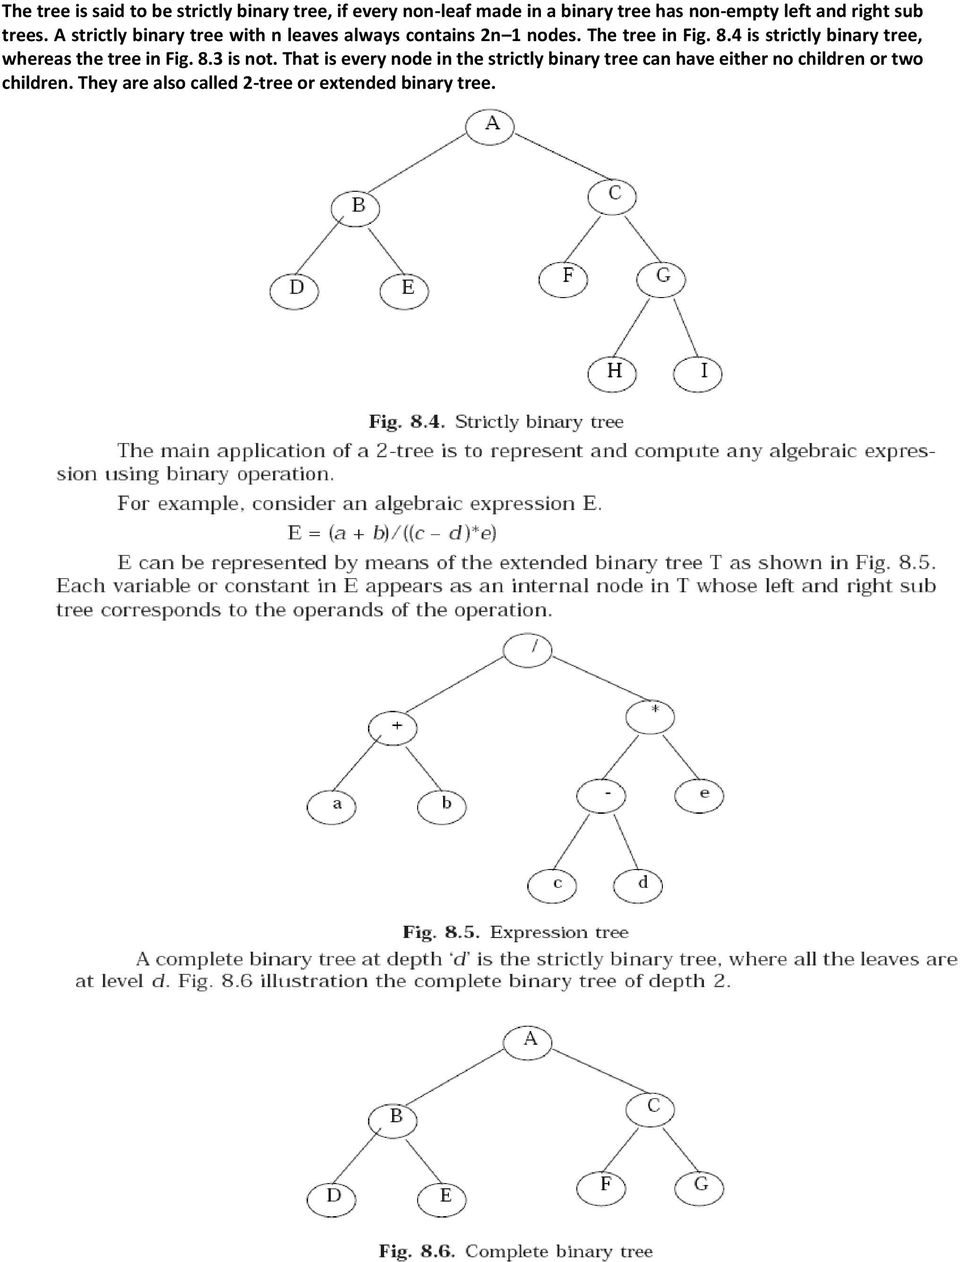 4 is strictly binary tree, whereas the tree in Fig. 8.3 is not.